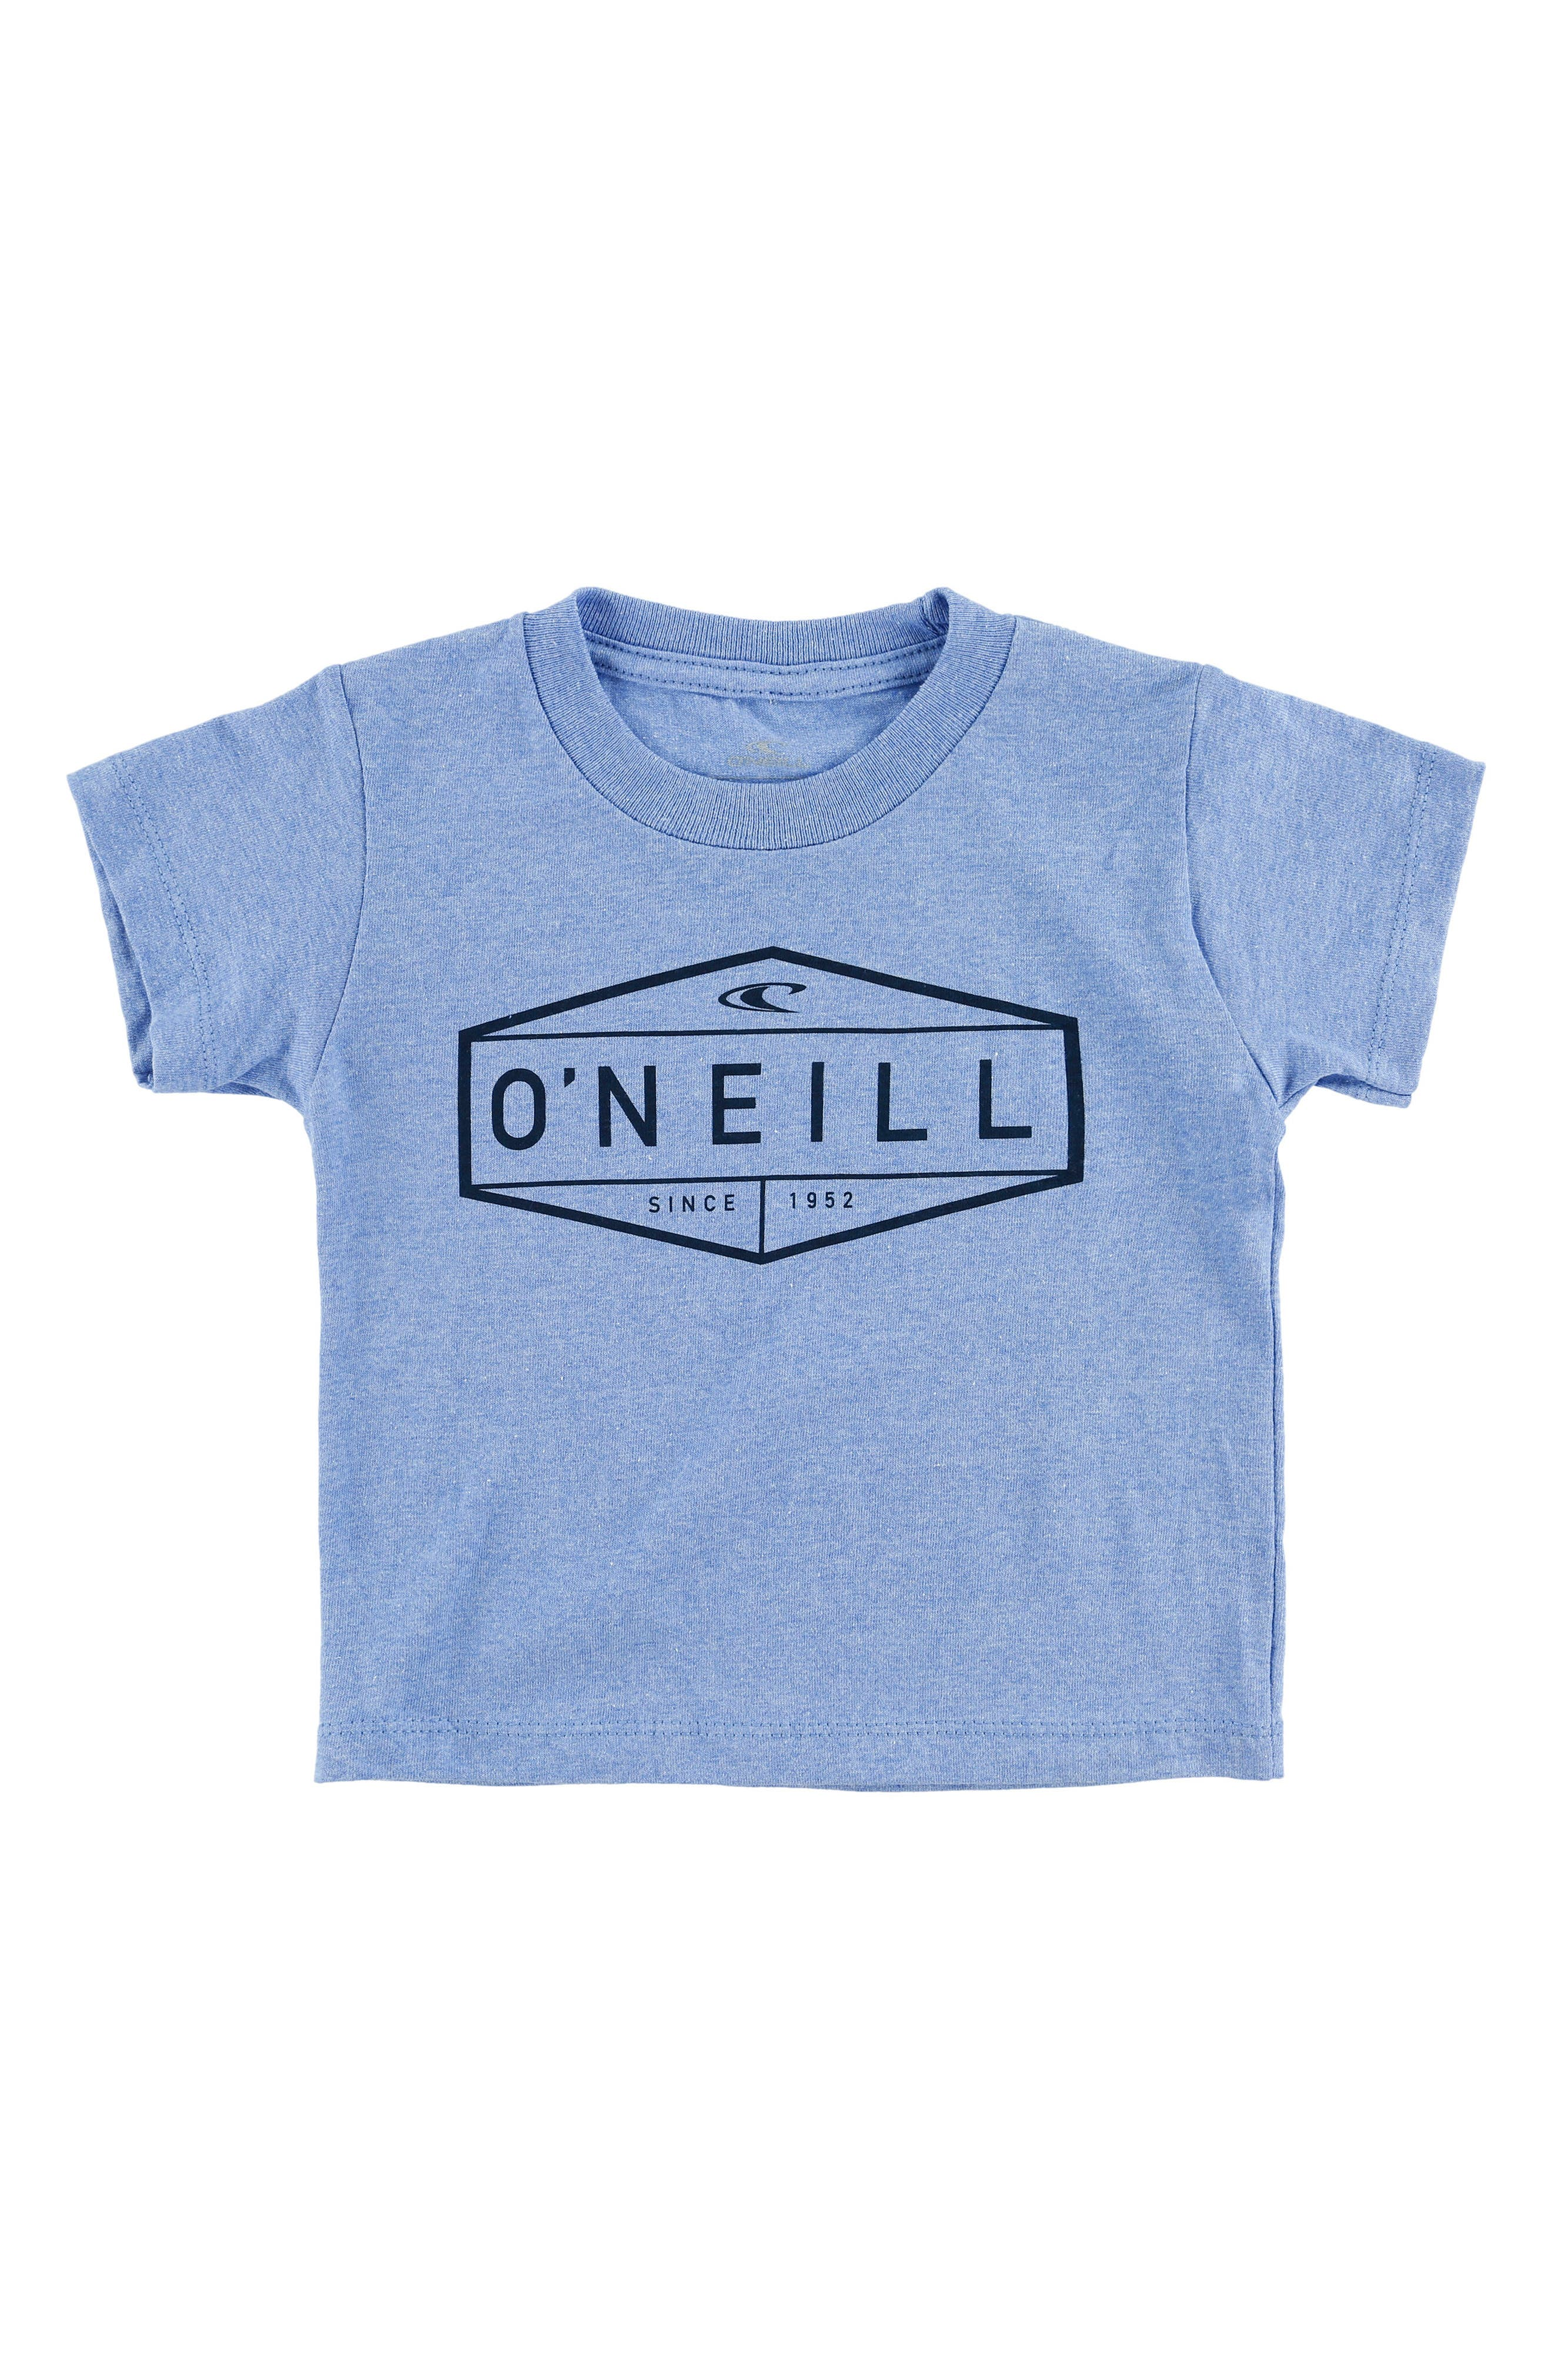 Alternate Image 1 Selected - O'Neill Boxer Graphic T-Shirt (Toddler Boys)